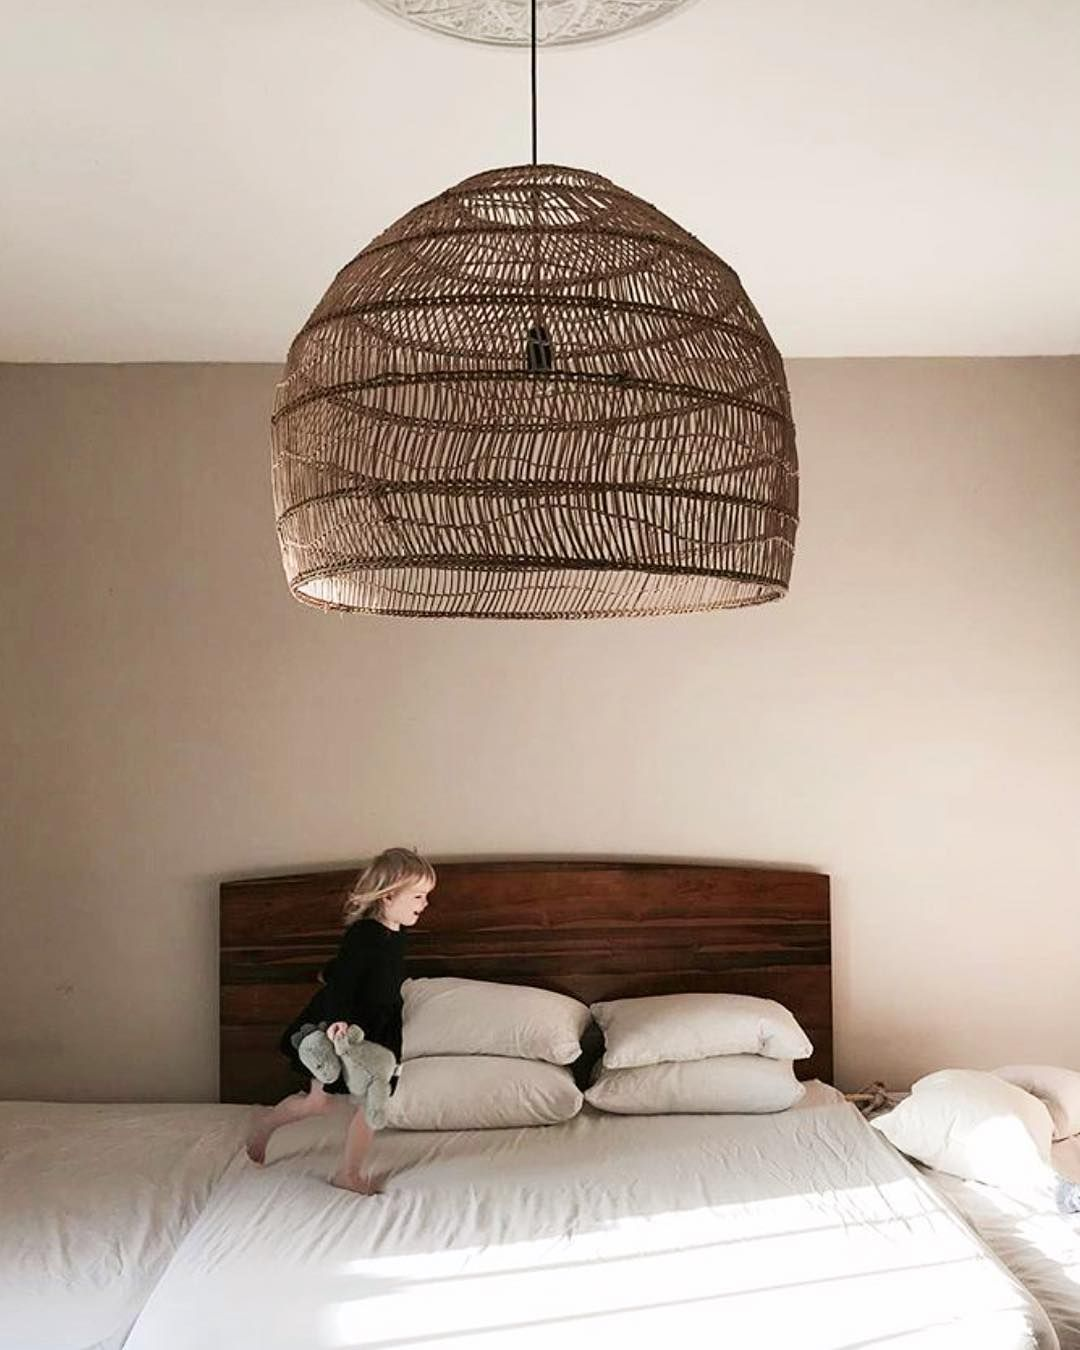 Global Interiors On Instagram Love This Shot Of Folkinteriors Of Our Hkliving Wicker Lamp In Big Size Wickerlamp Dutchdesign Rattan Lamp Rattan Interior